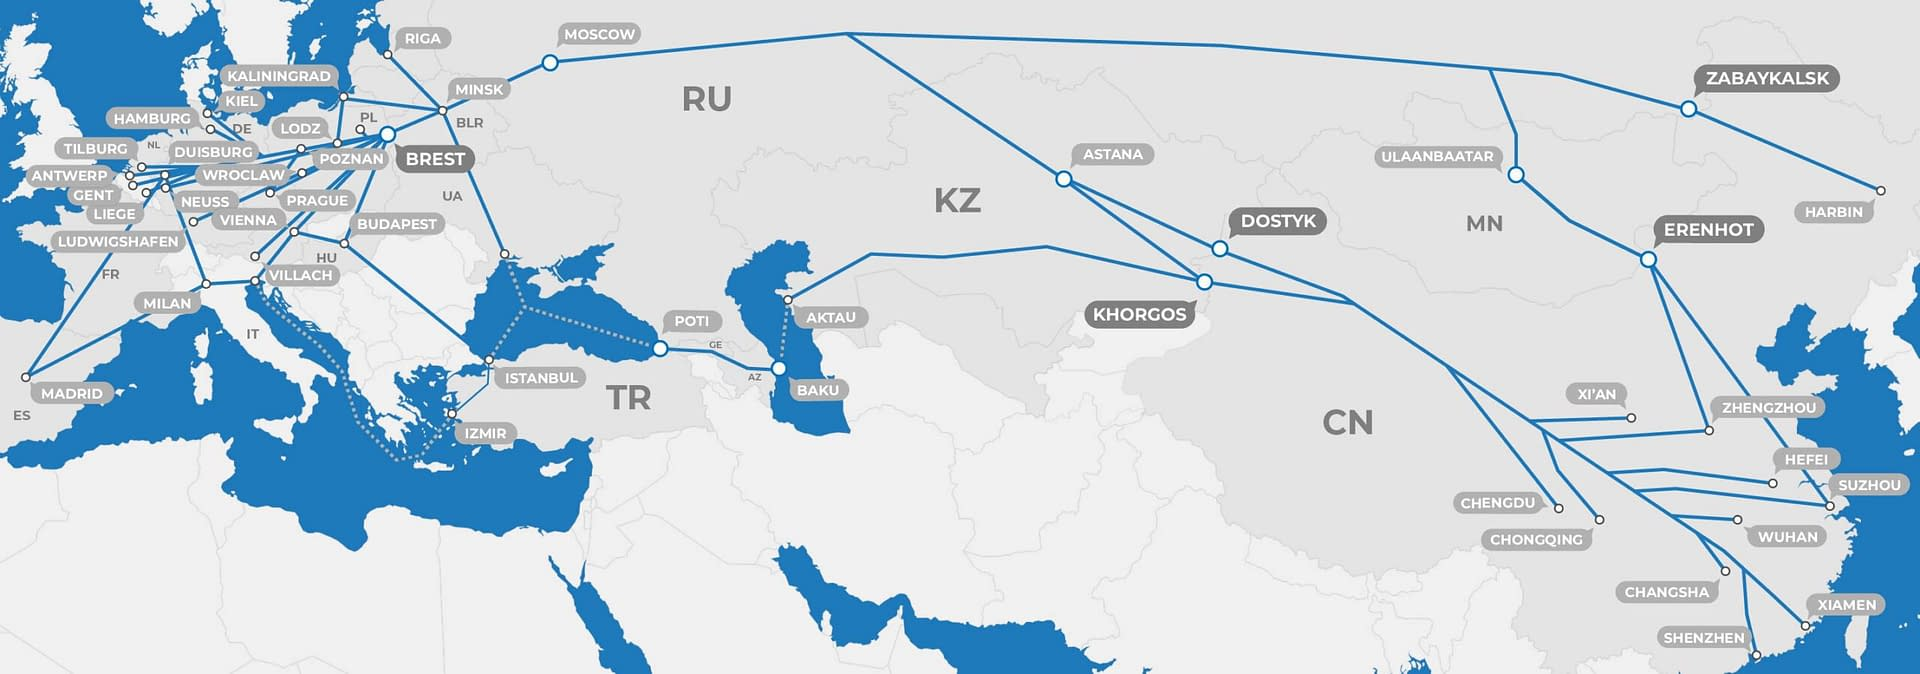 Map of Eurasia showing train routes between Europe and China